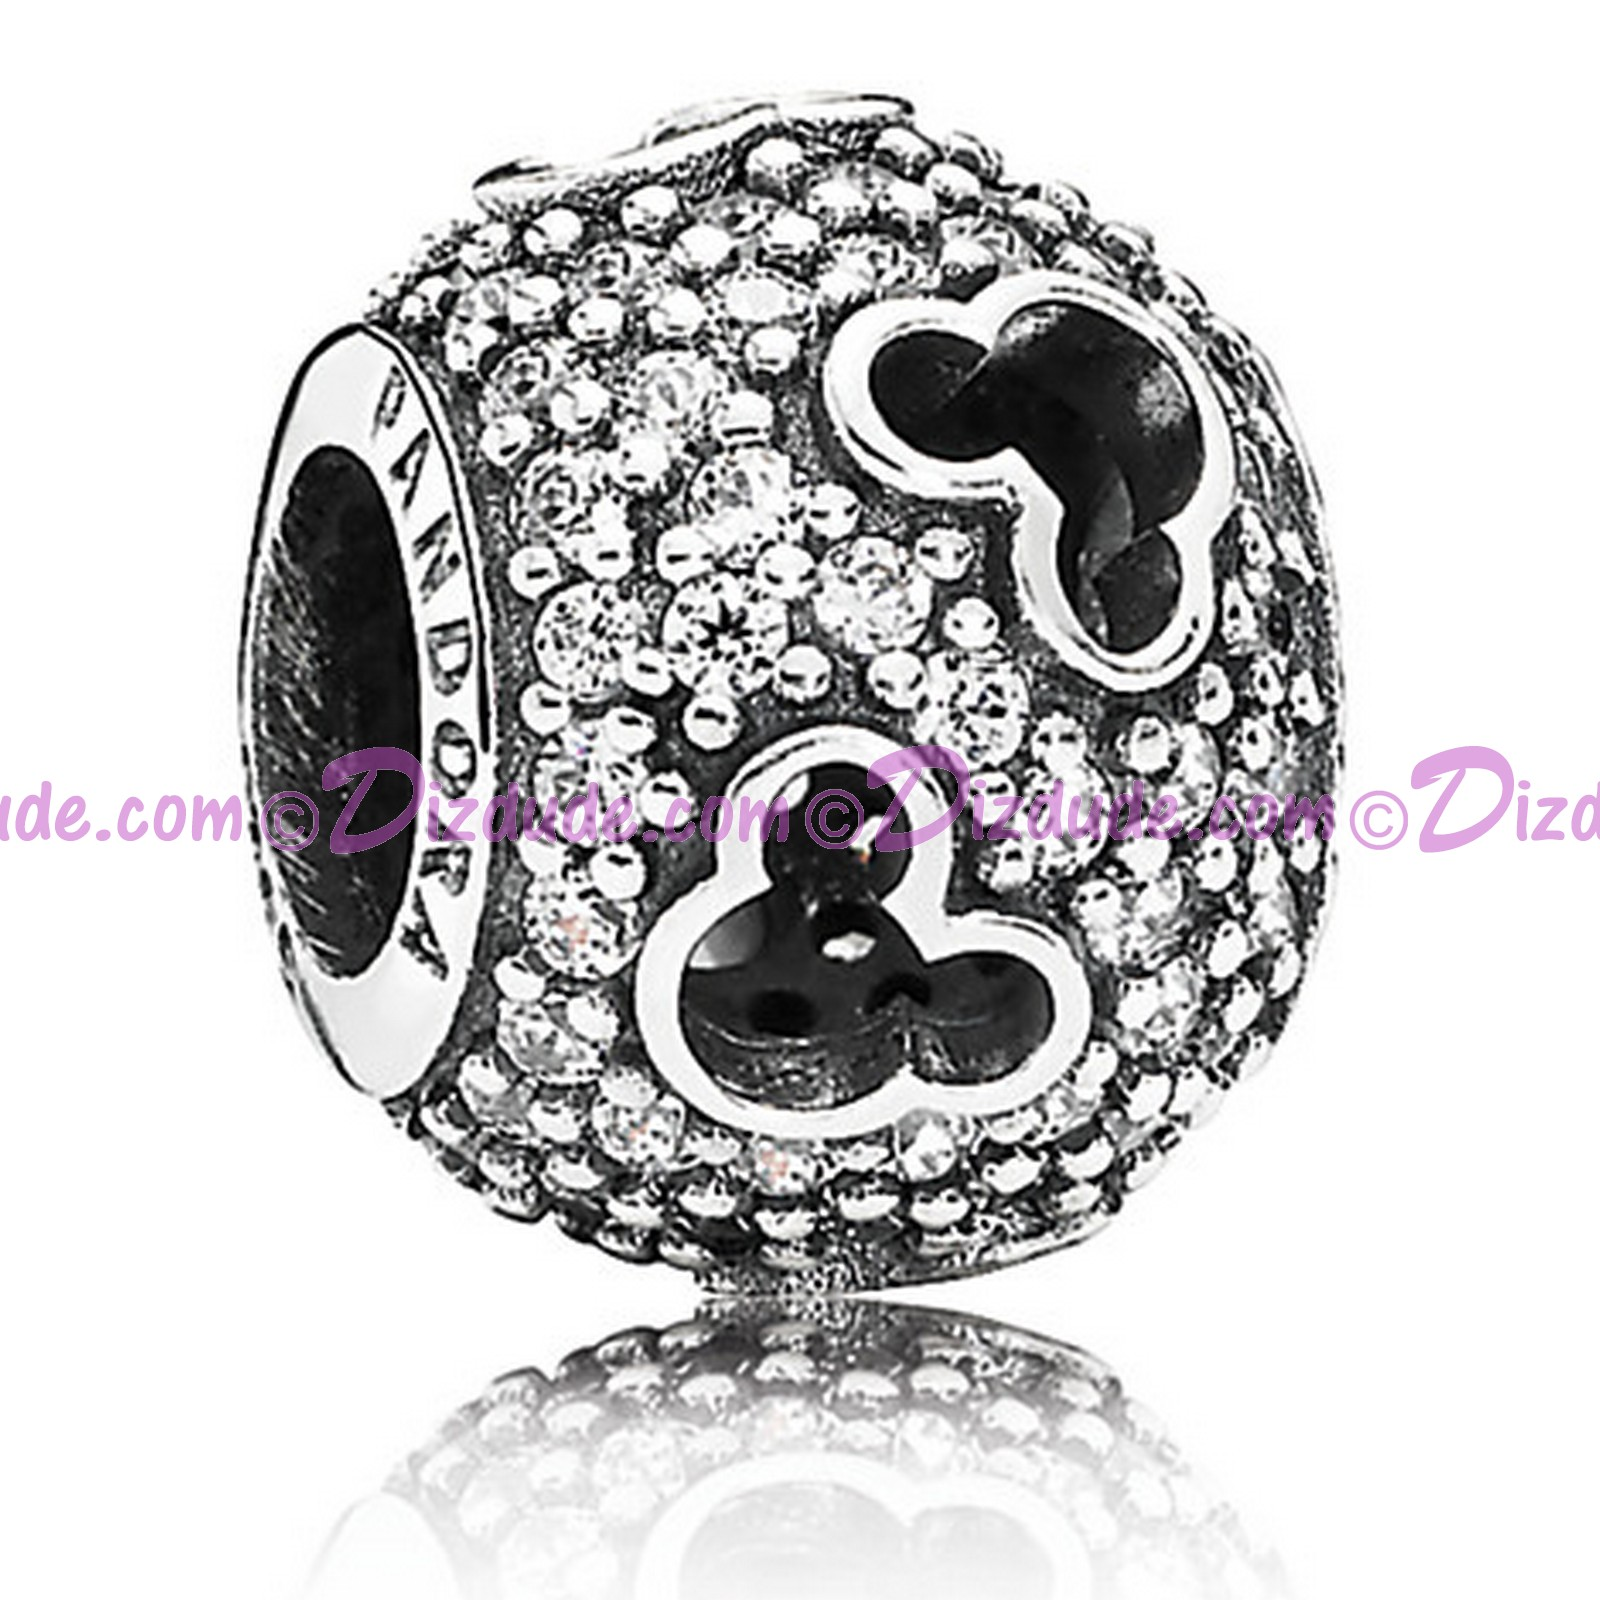 """Disney Pandora """"Mickey Silhouettes"""" Sterling Silver Charm with Cubic Zirconias"""